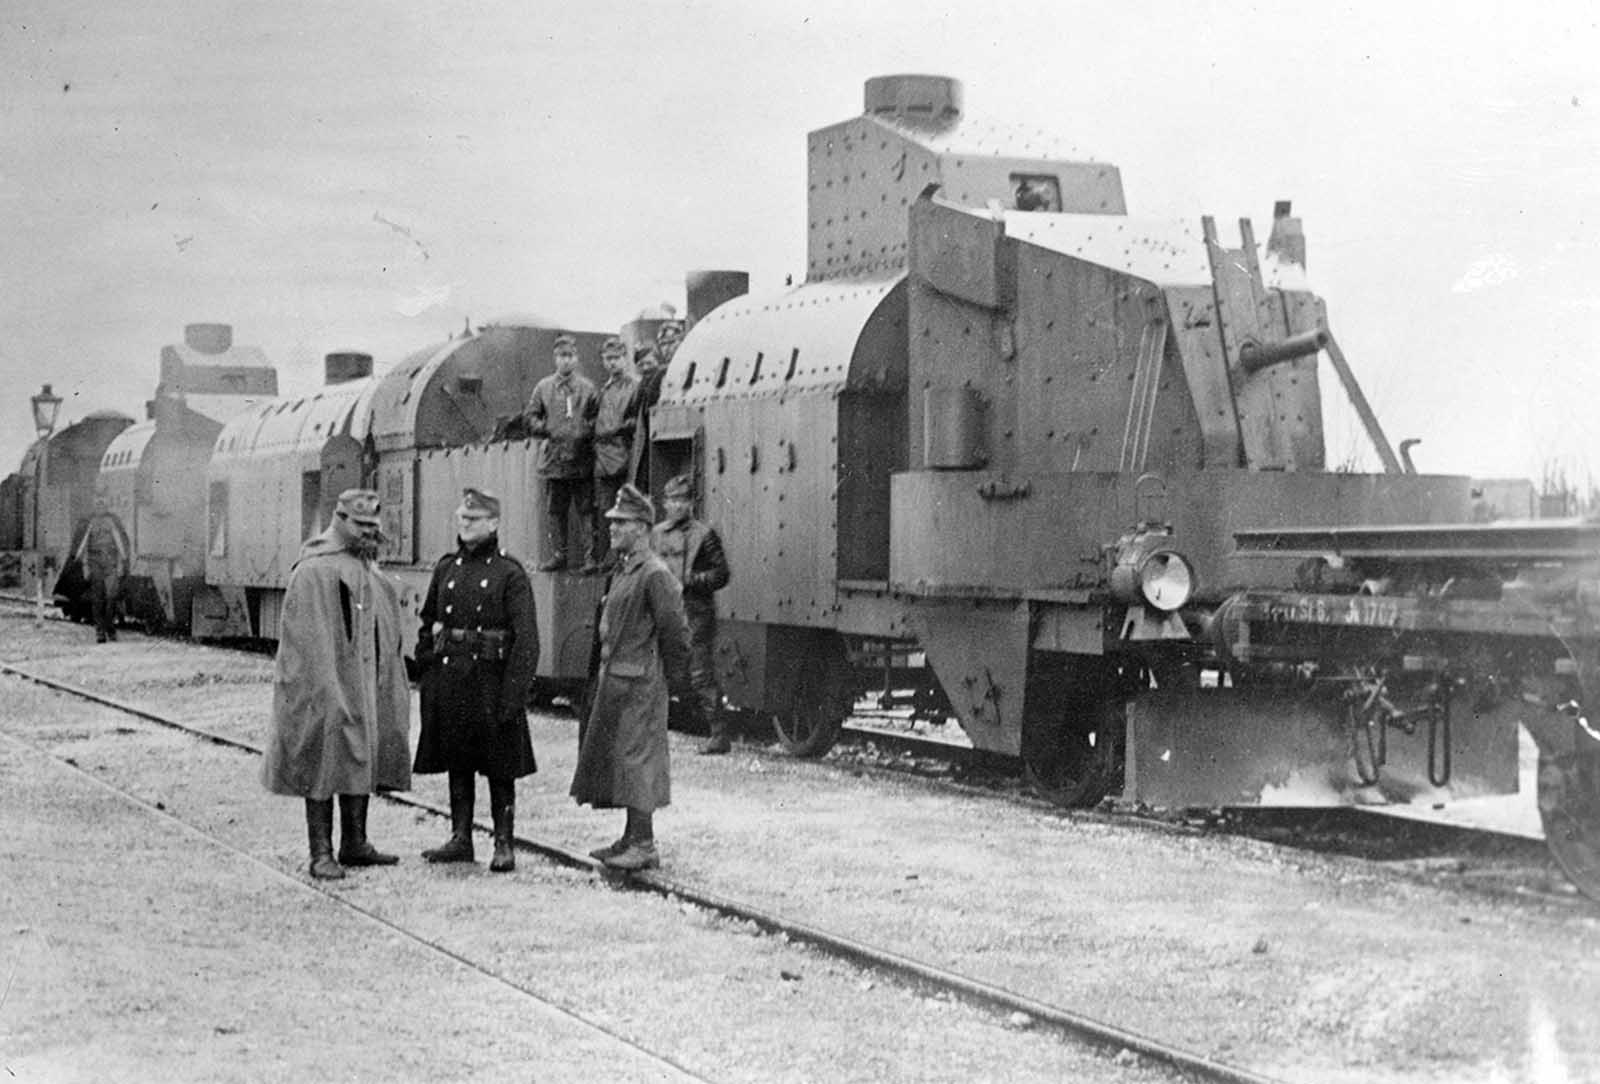 An Austrian armored train in Galicia, ca, 1915. Adding armor to trains dates back to the American Civil War, used as a way to safely move weapons and personnel through hostile territory.